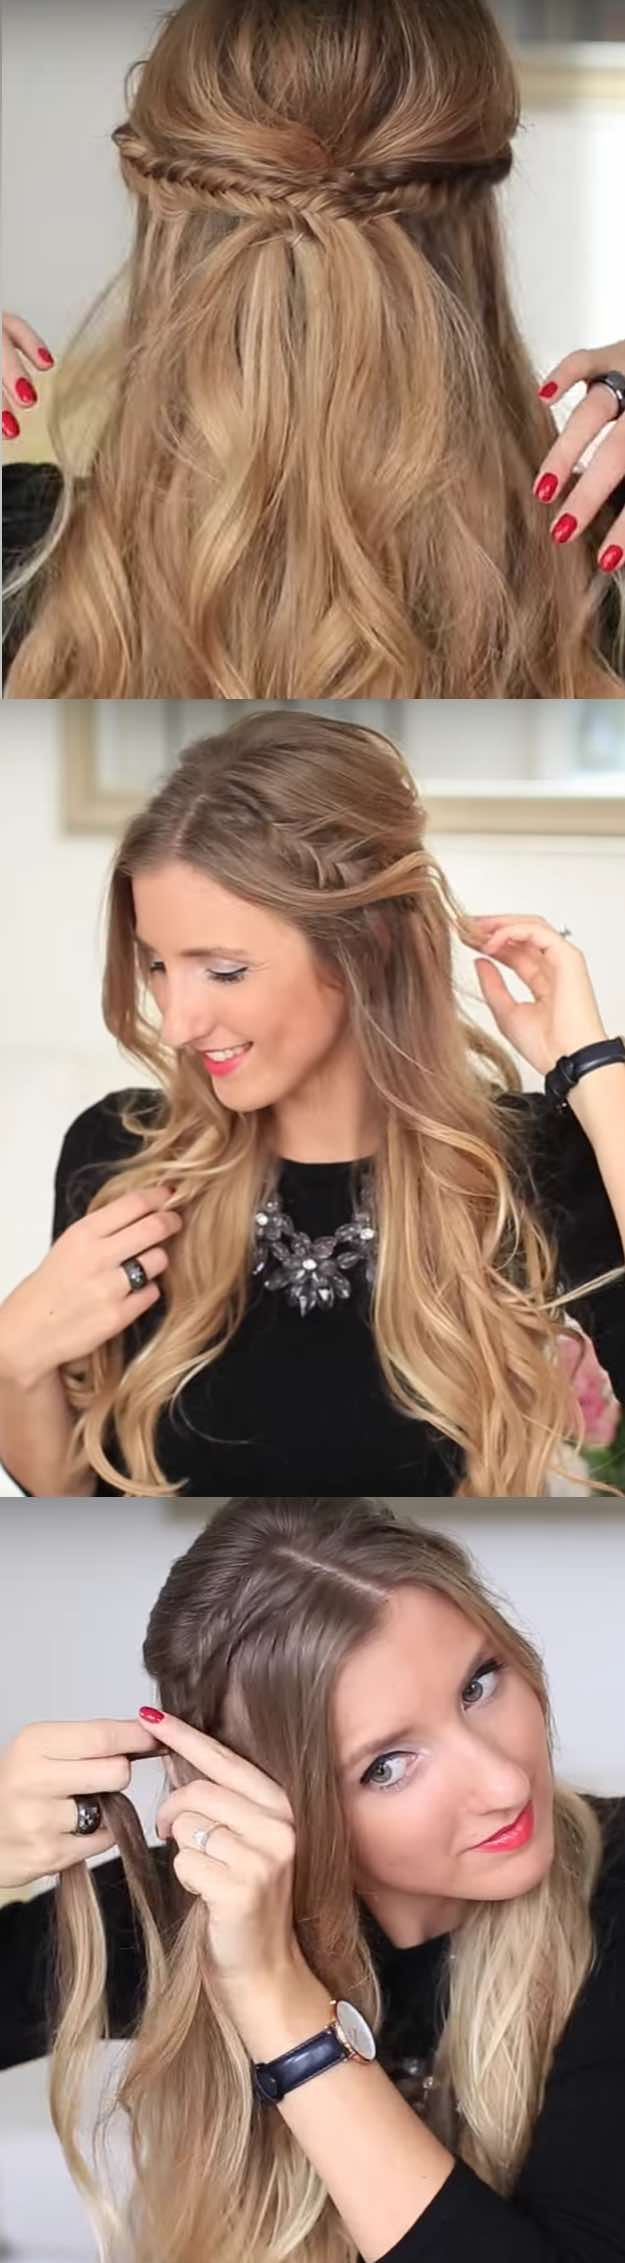 25 Easy Half-Up Half-Down Hairstyle Tutorials For Prom ...